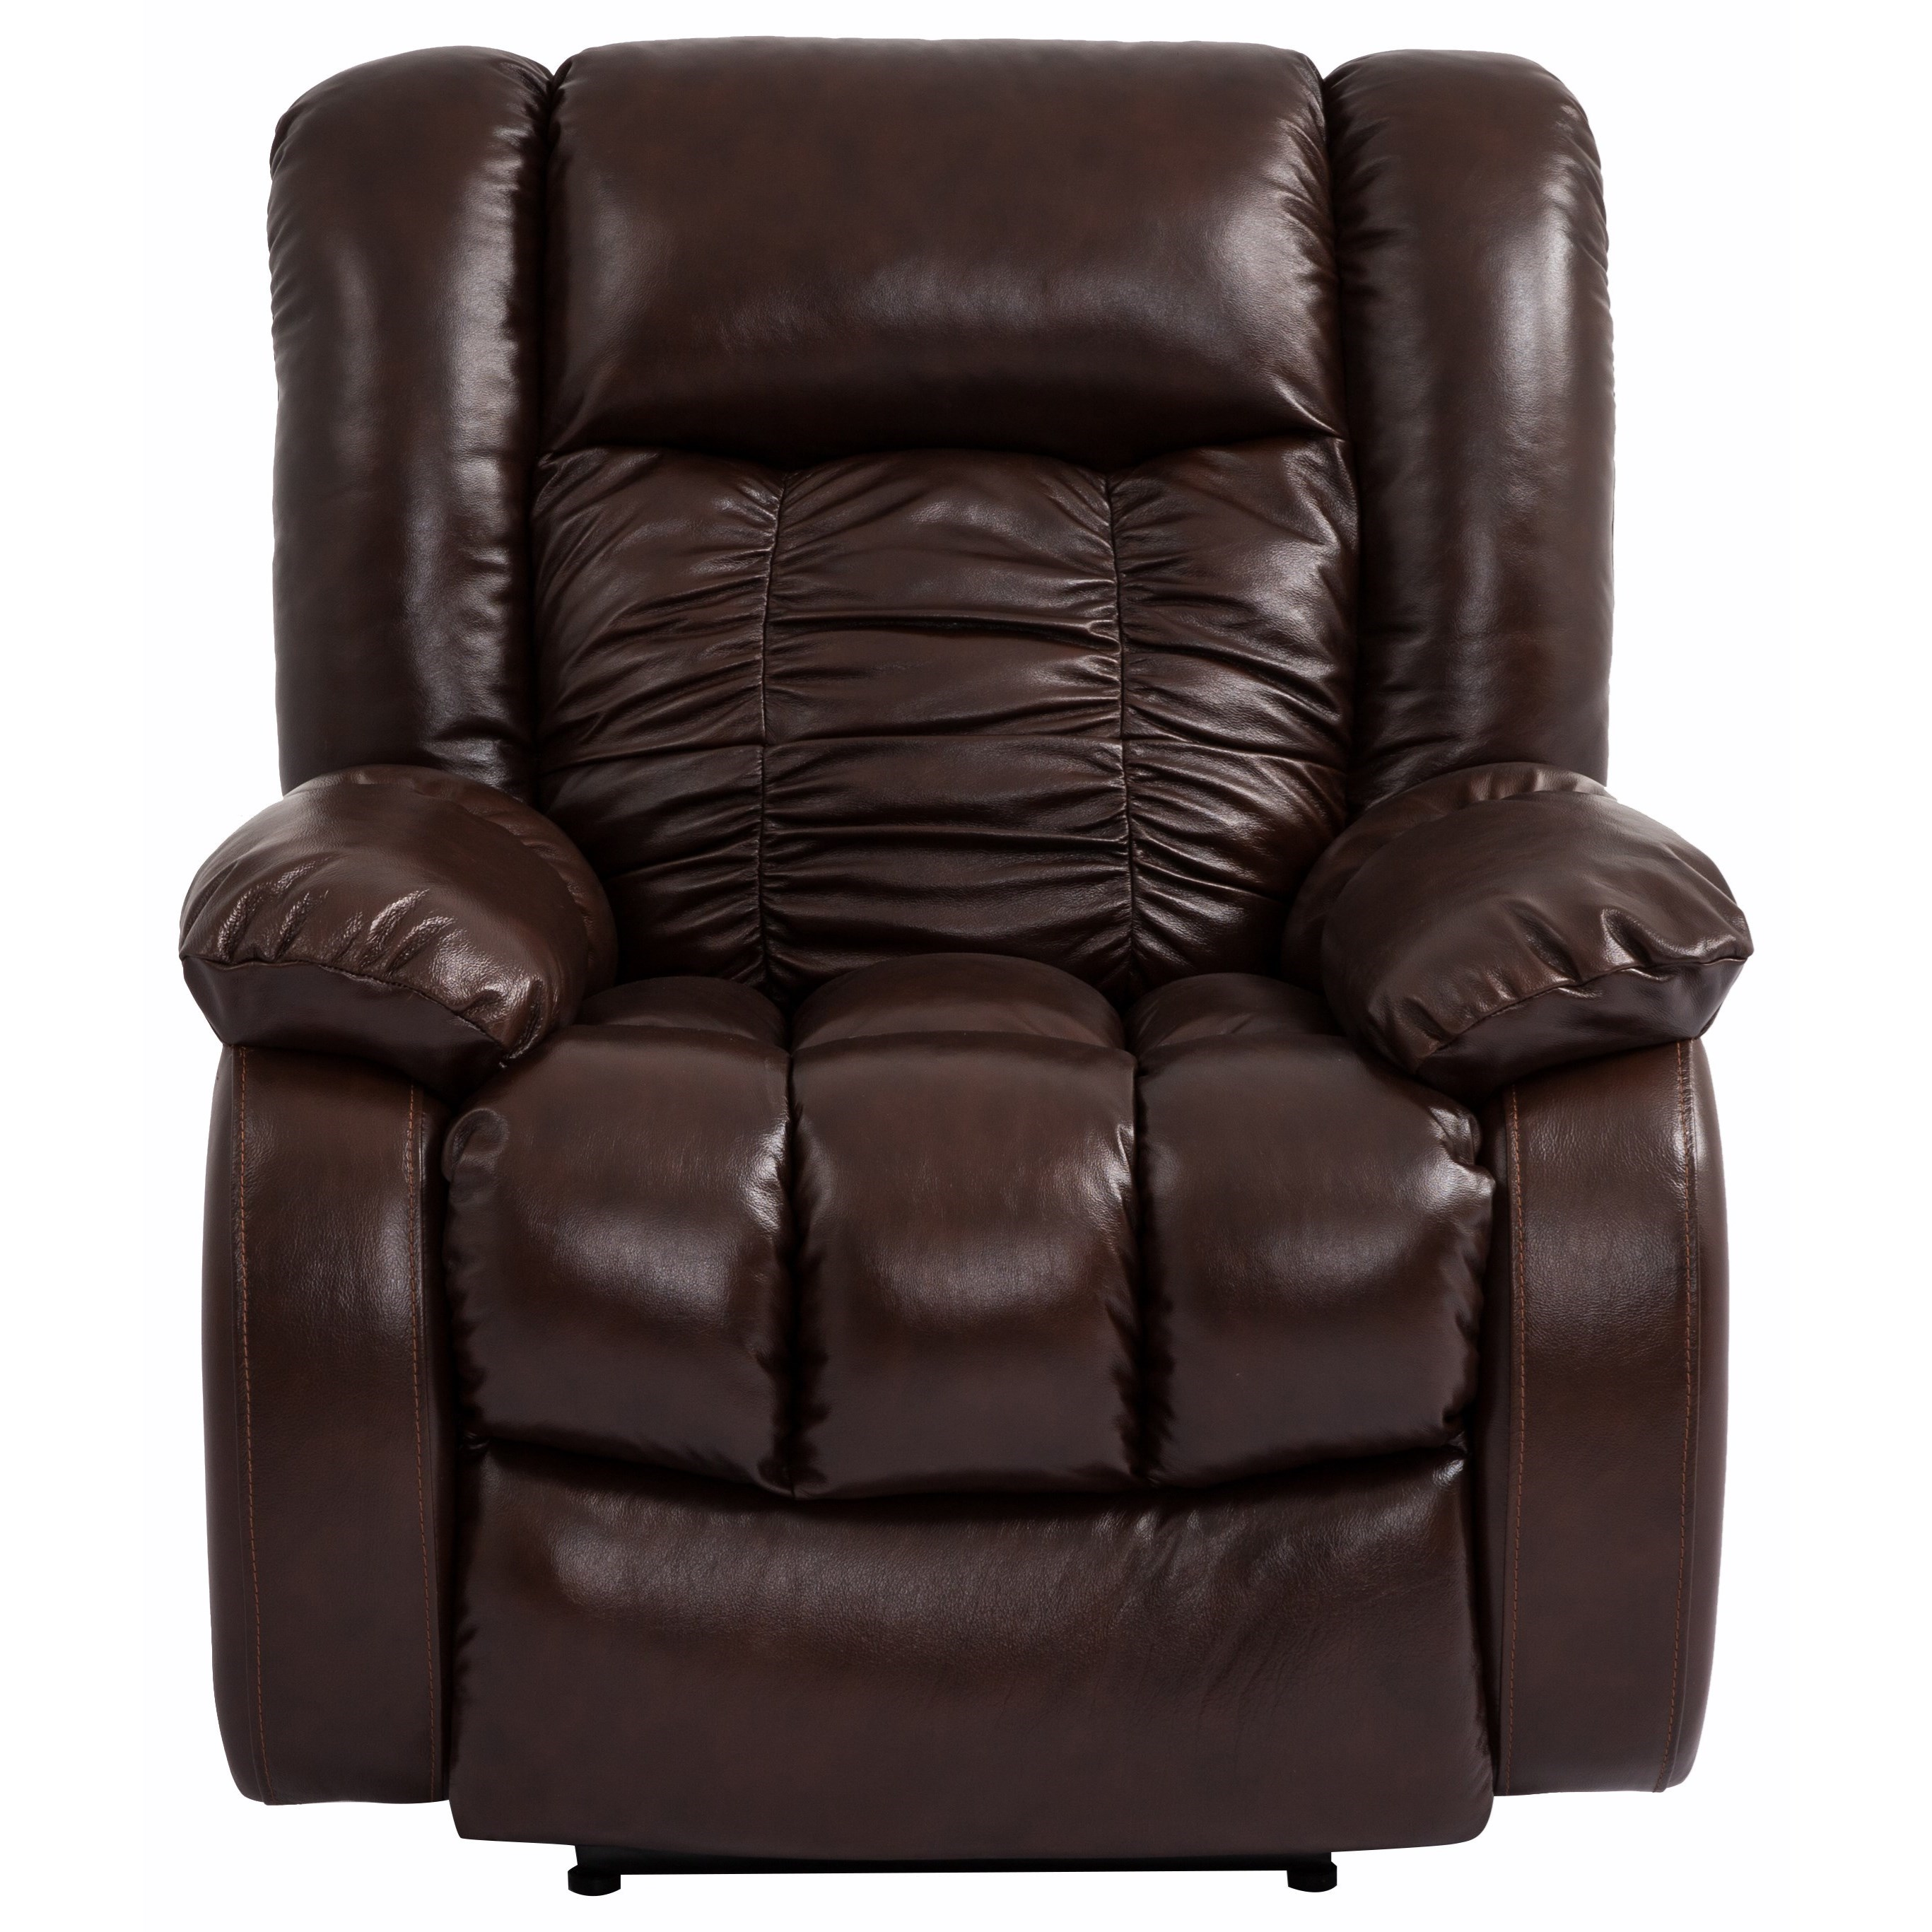 UK358 Glider Recliner by Cheers Sofa at Lagniappe Home Store